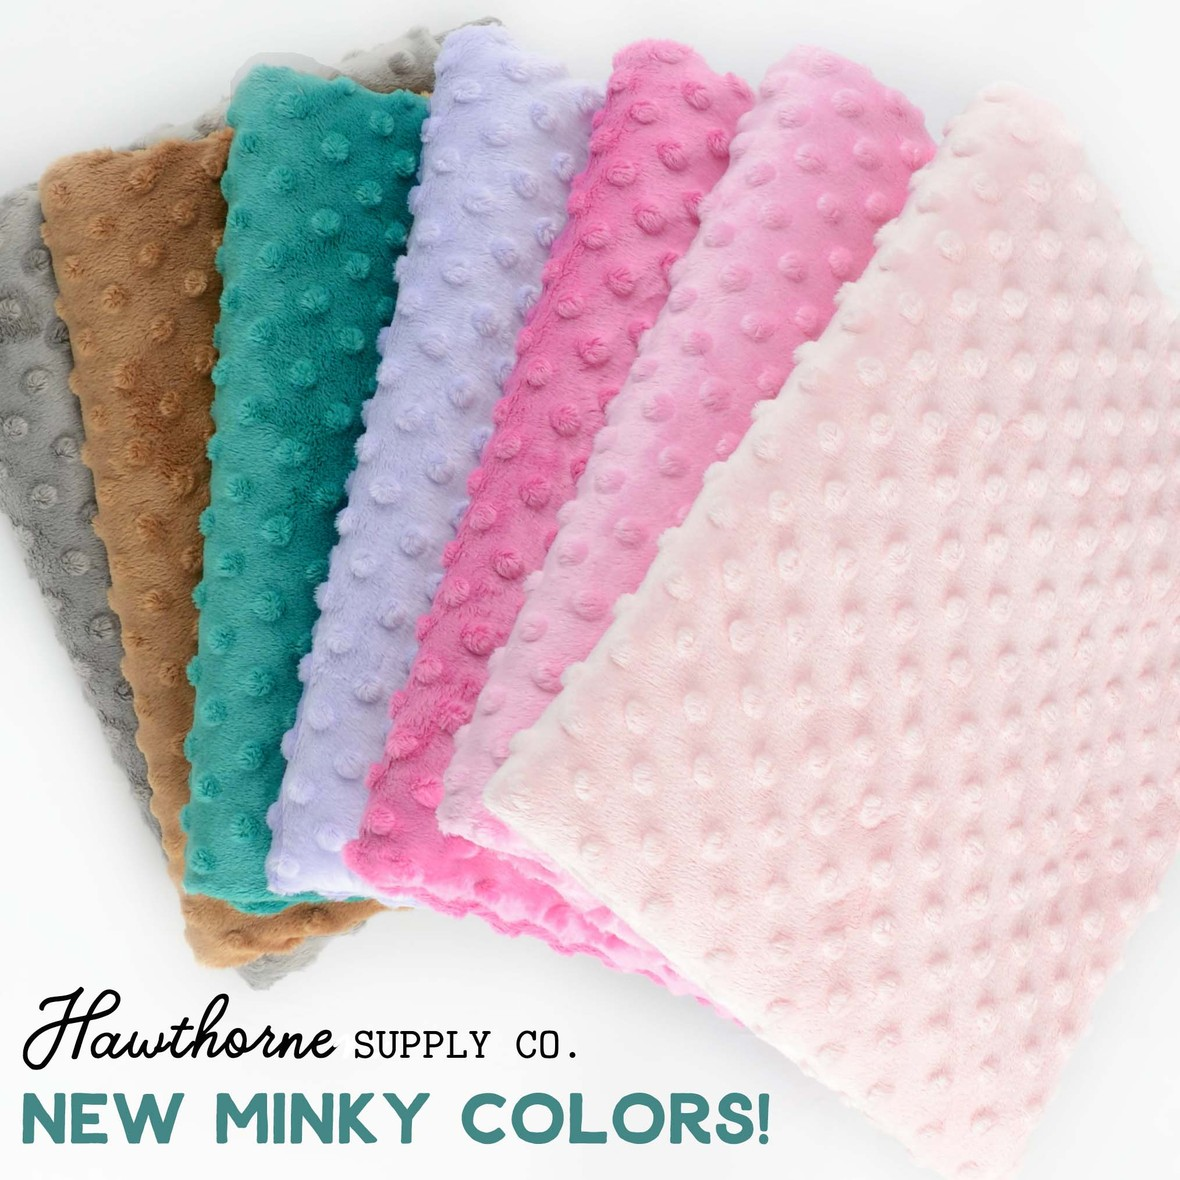 New Minky 2019 colors